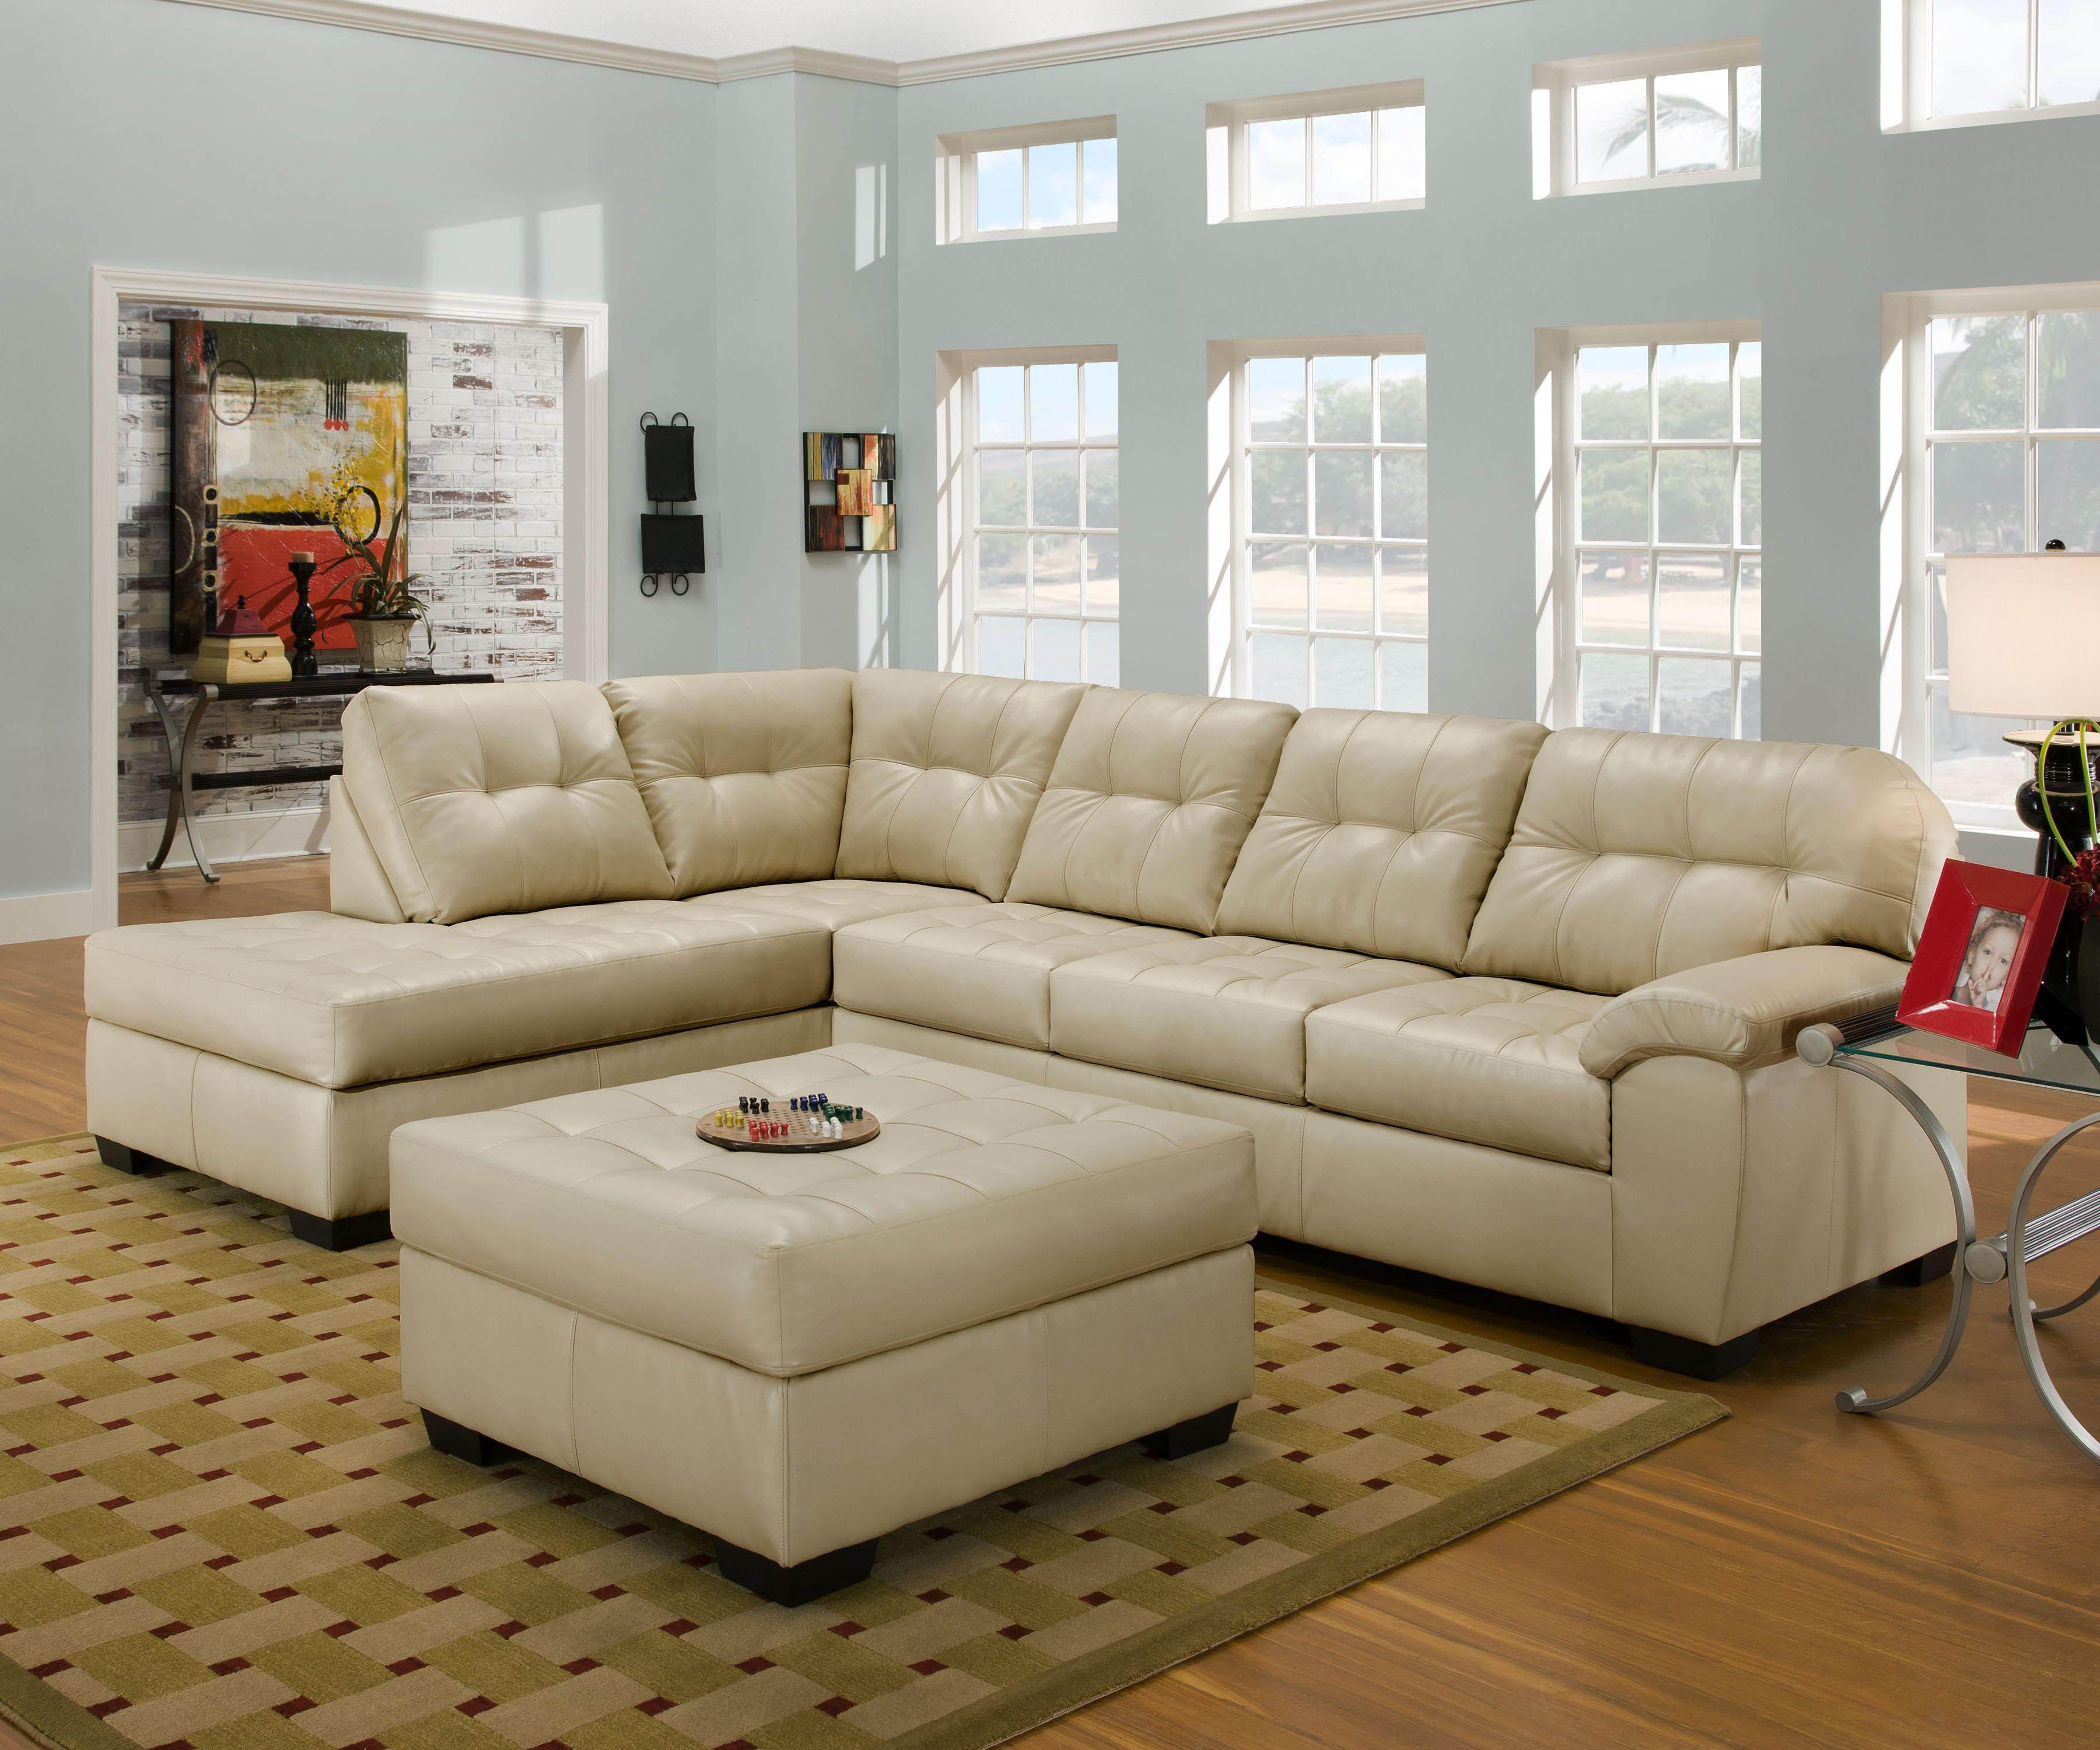 9568 Sectional Sofa by United Furniture Industries at Dream Home Interiors